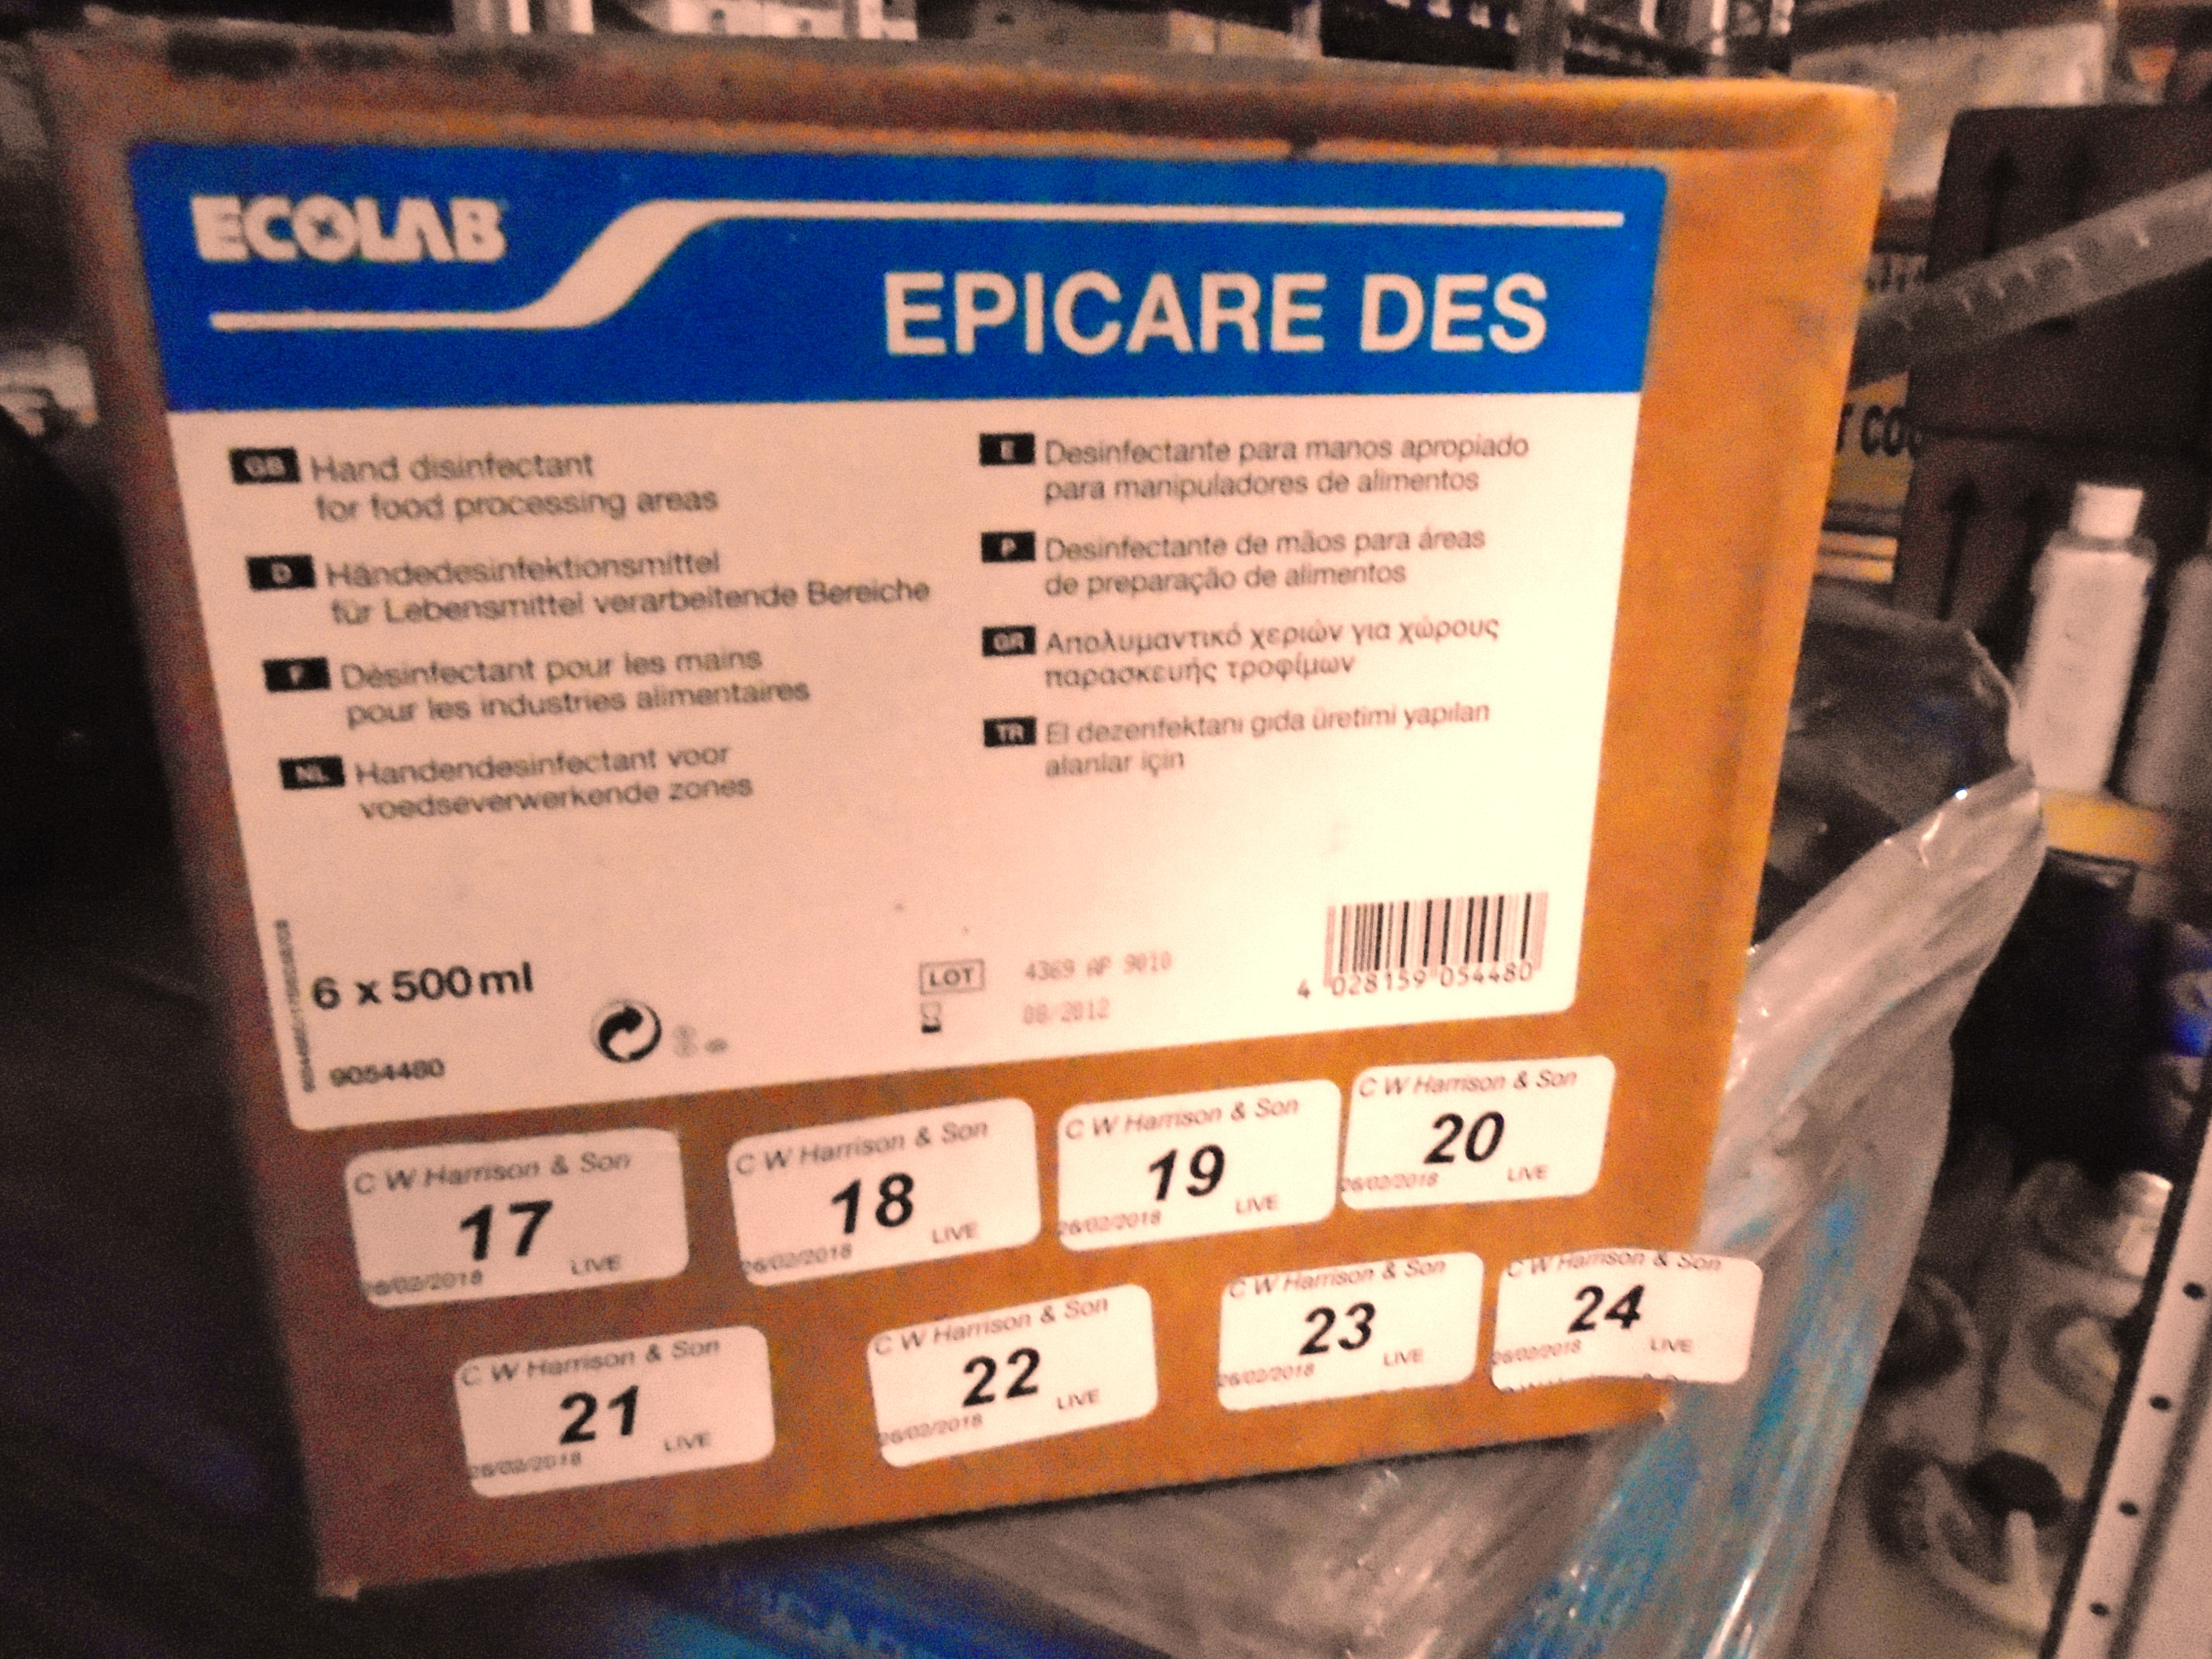 Lot 24 - 240 x Ecolab hand disinfectant for food processing areas (40 x outer boxes)